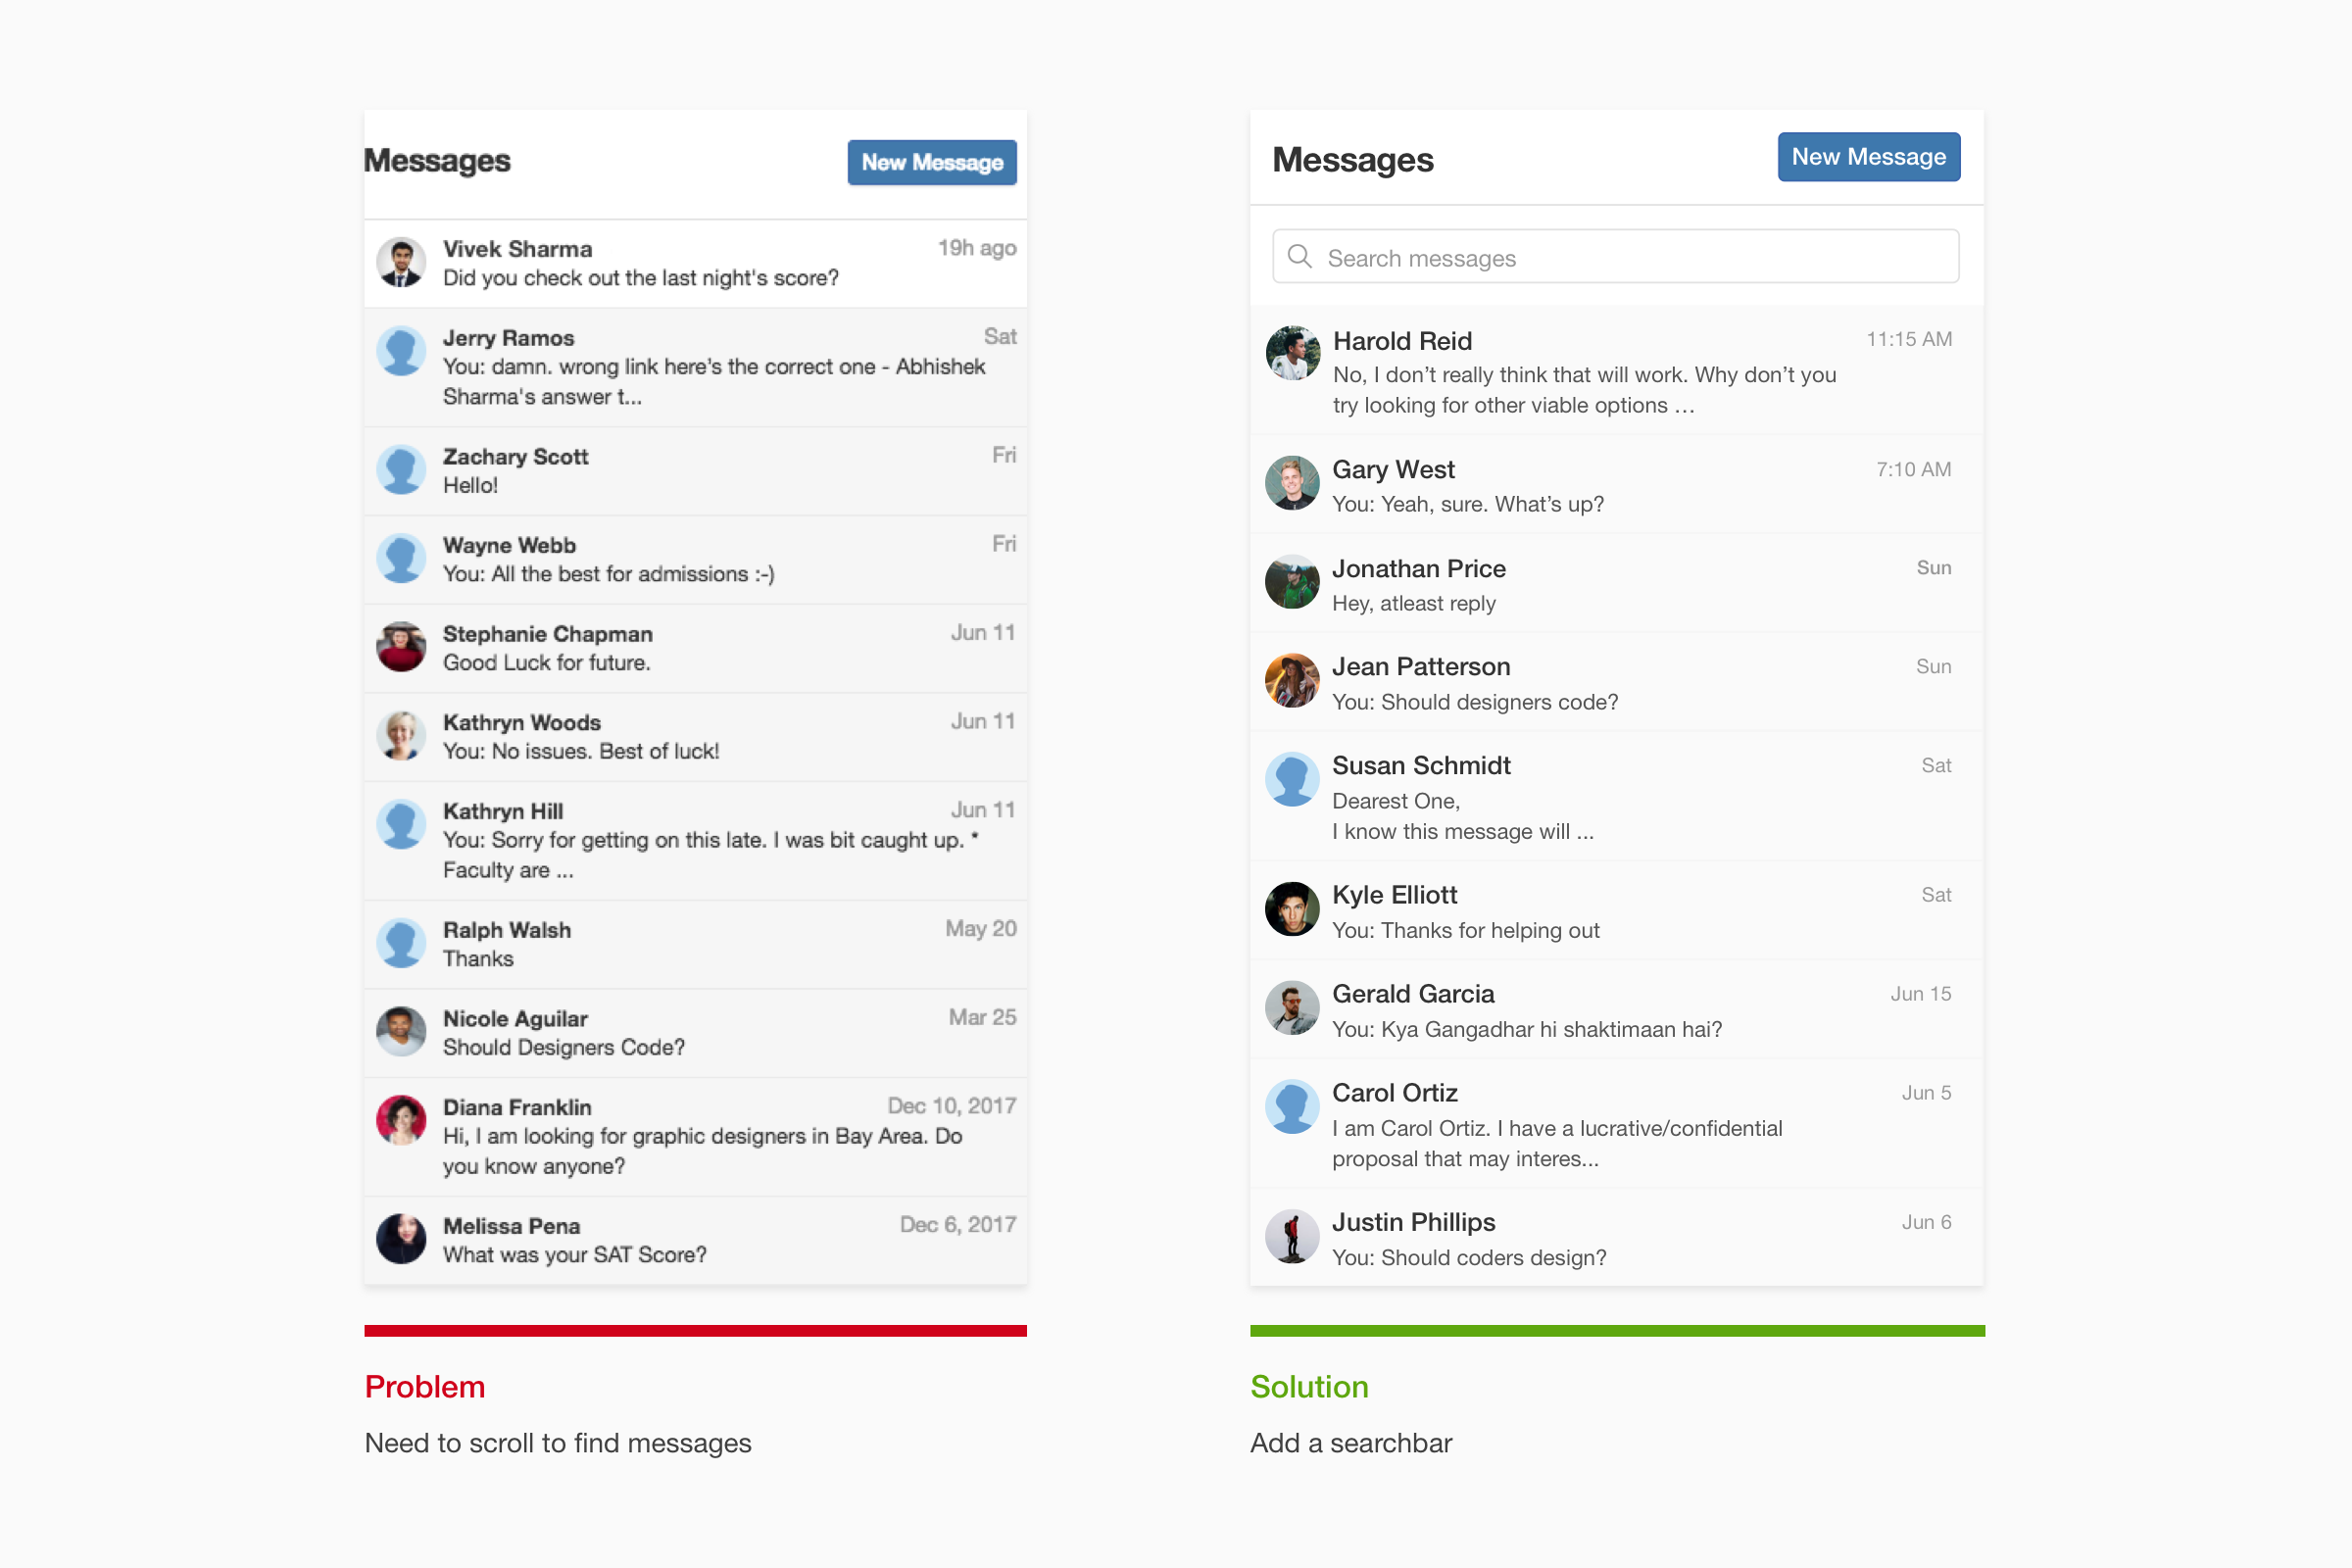 Enhancing Quora's messaging UX - UX Collective